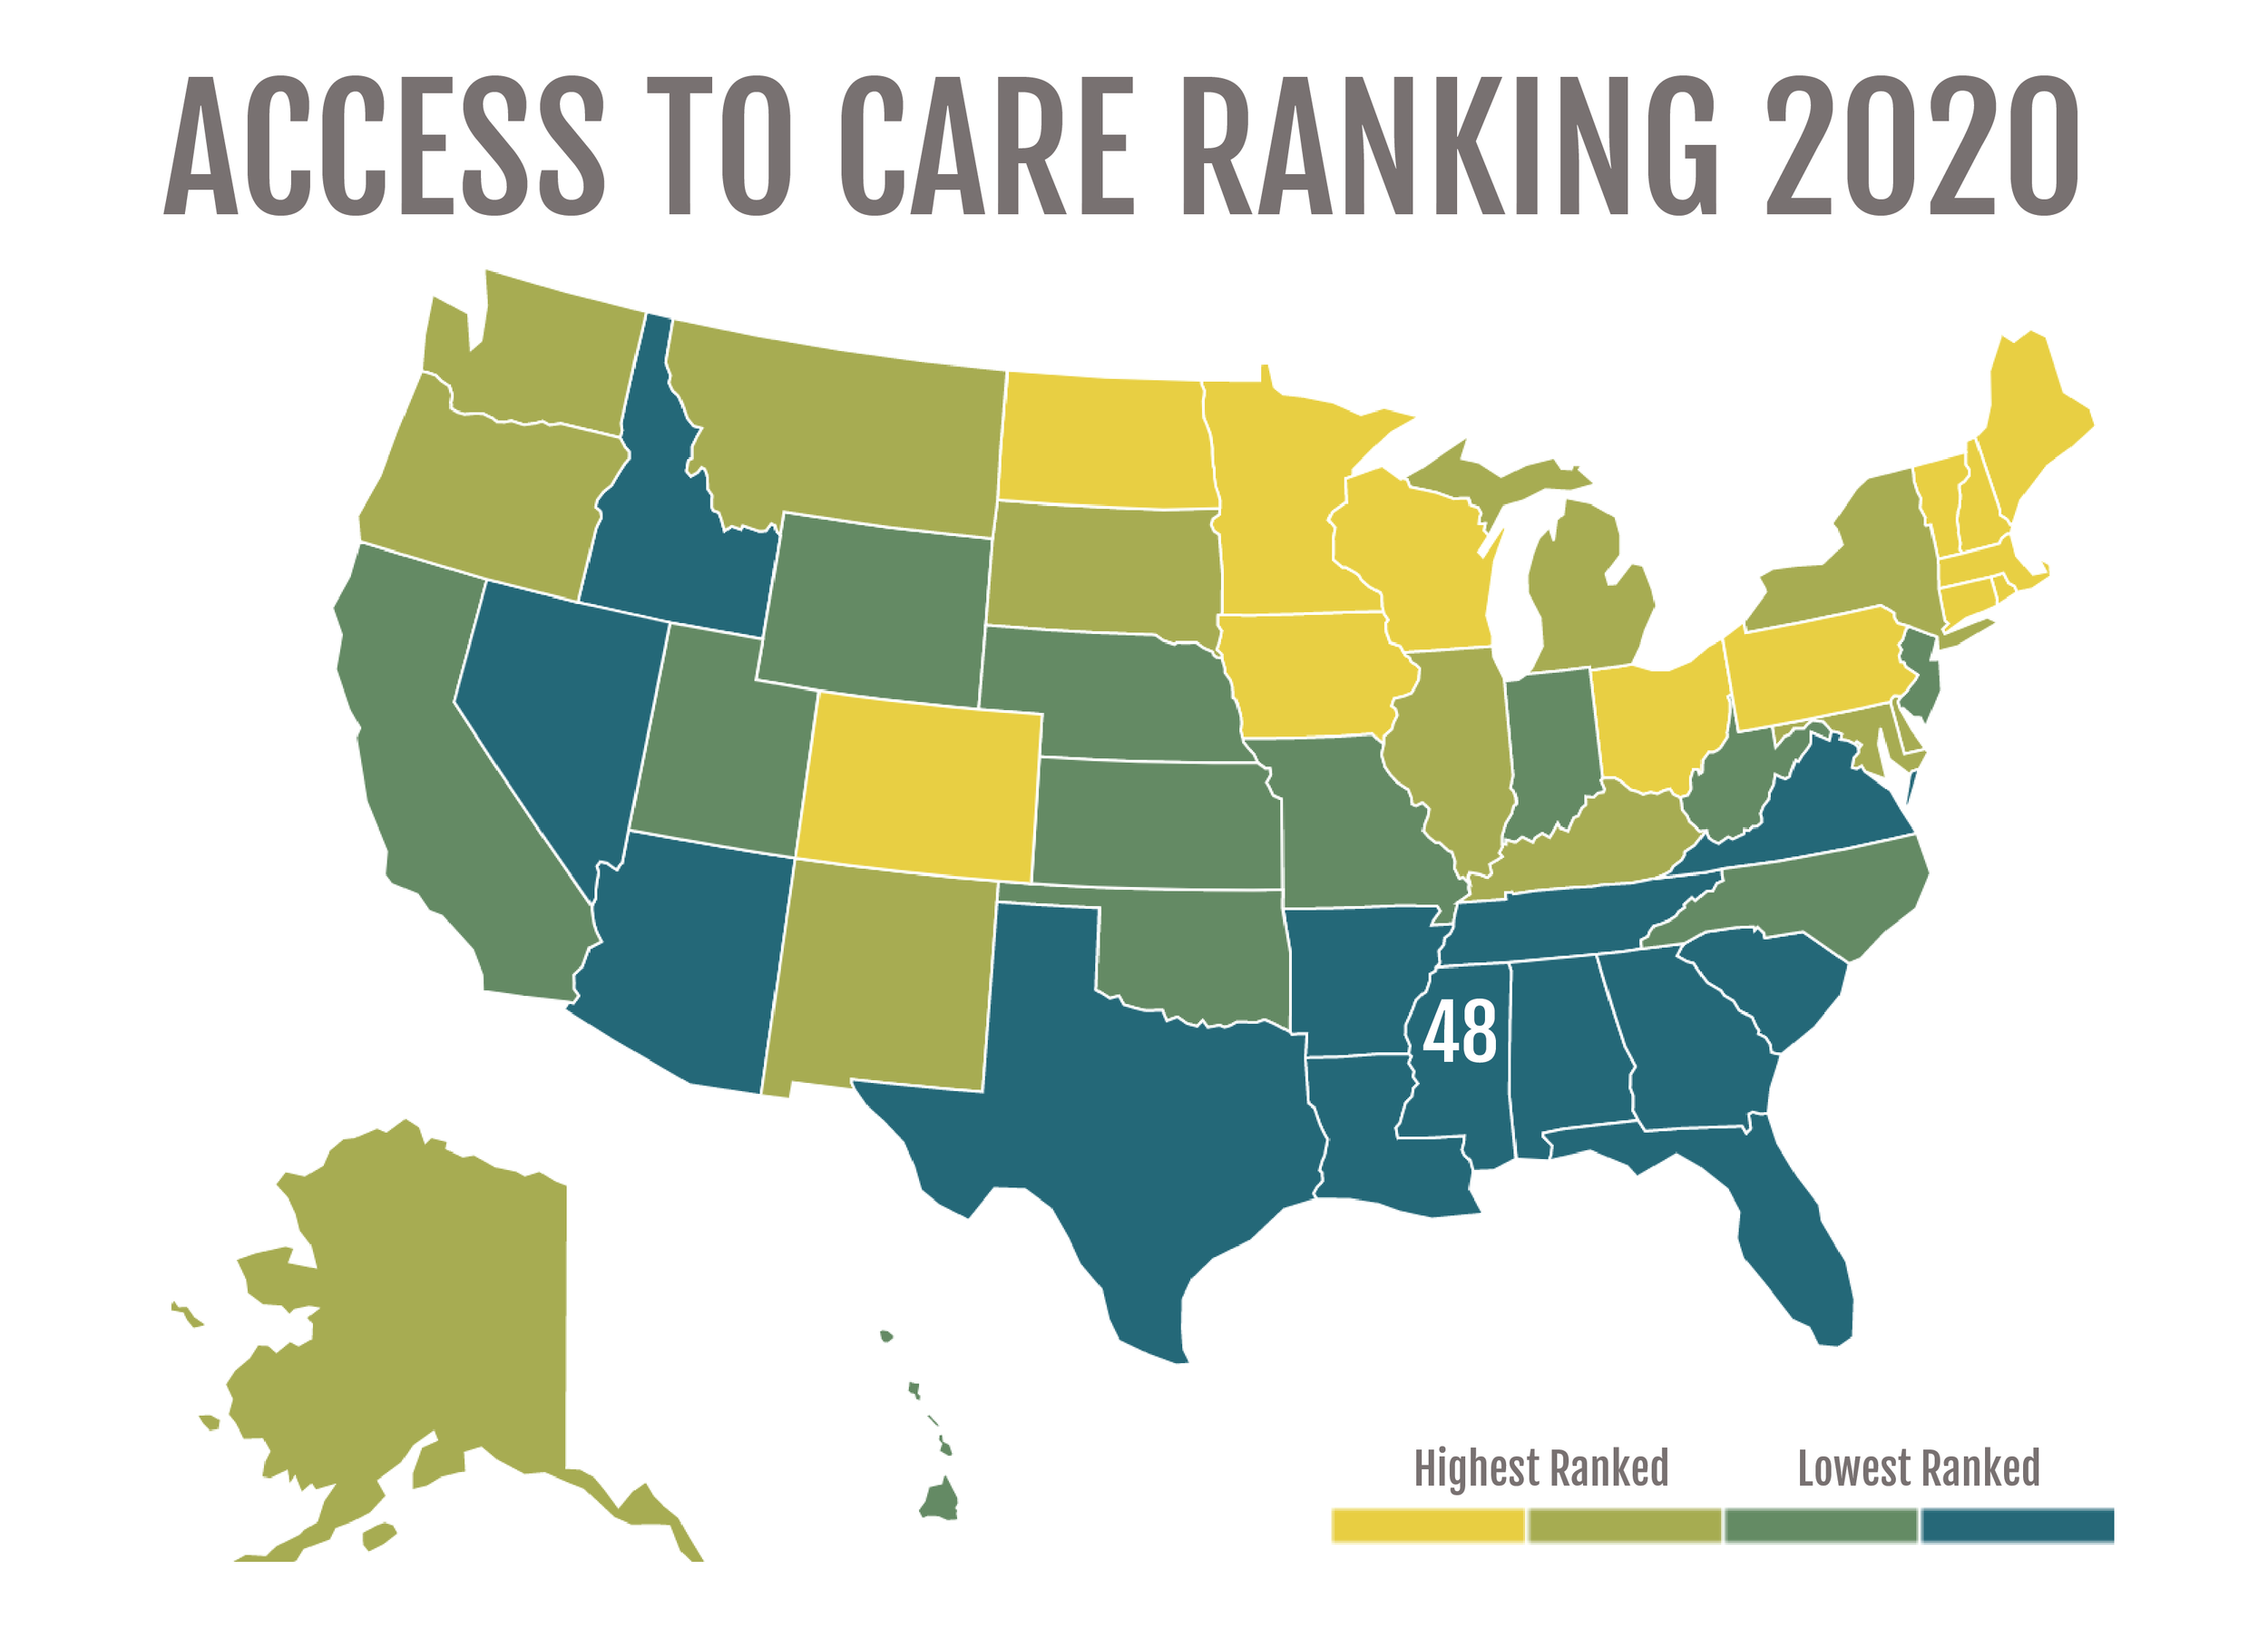 Source: Mental Health America, Access to Care Ranking 2020   Katherine Mitchell/Mississippi Center for Investigative Reporting